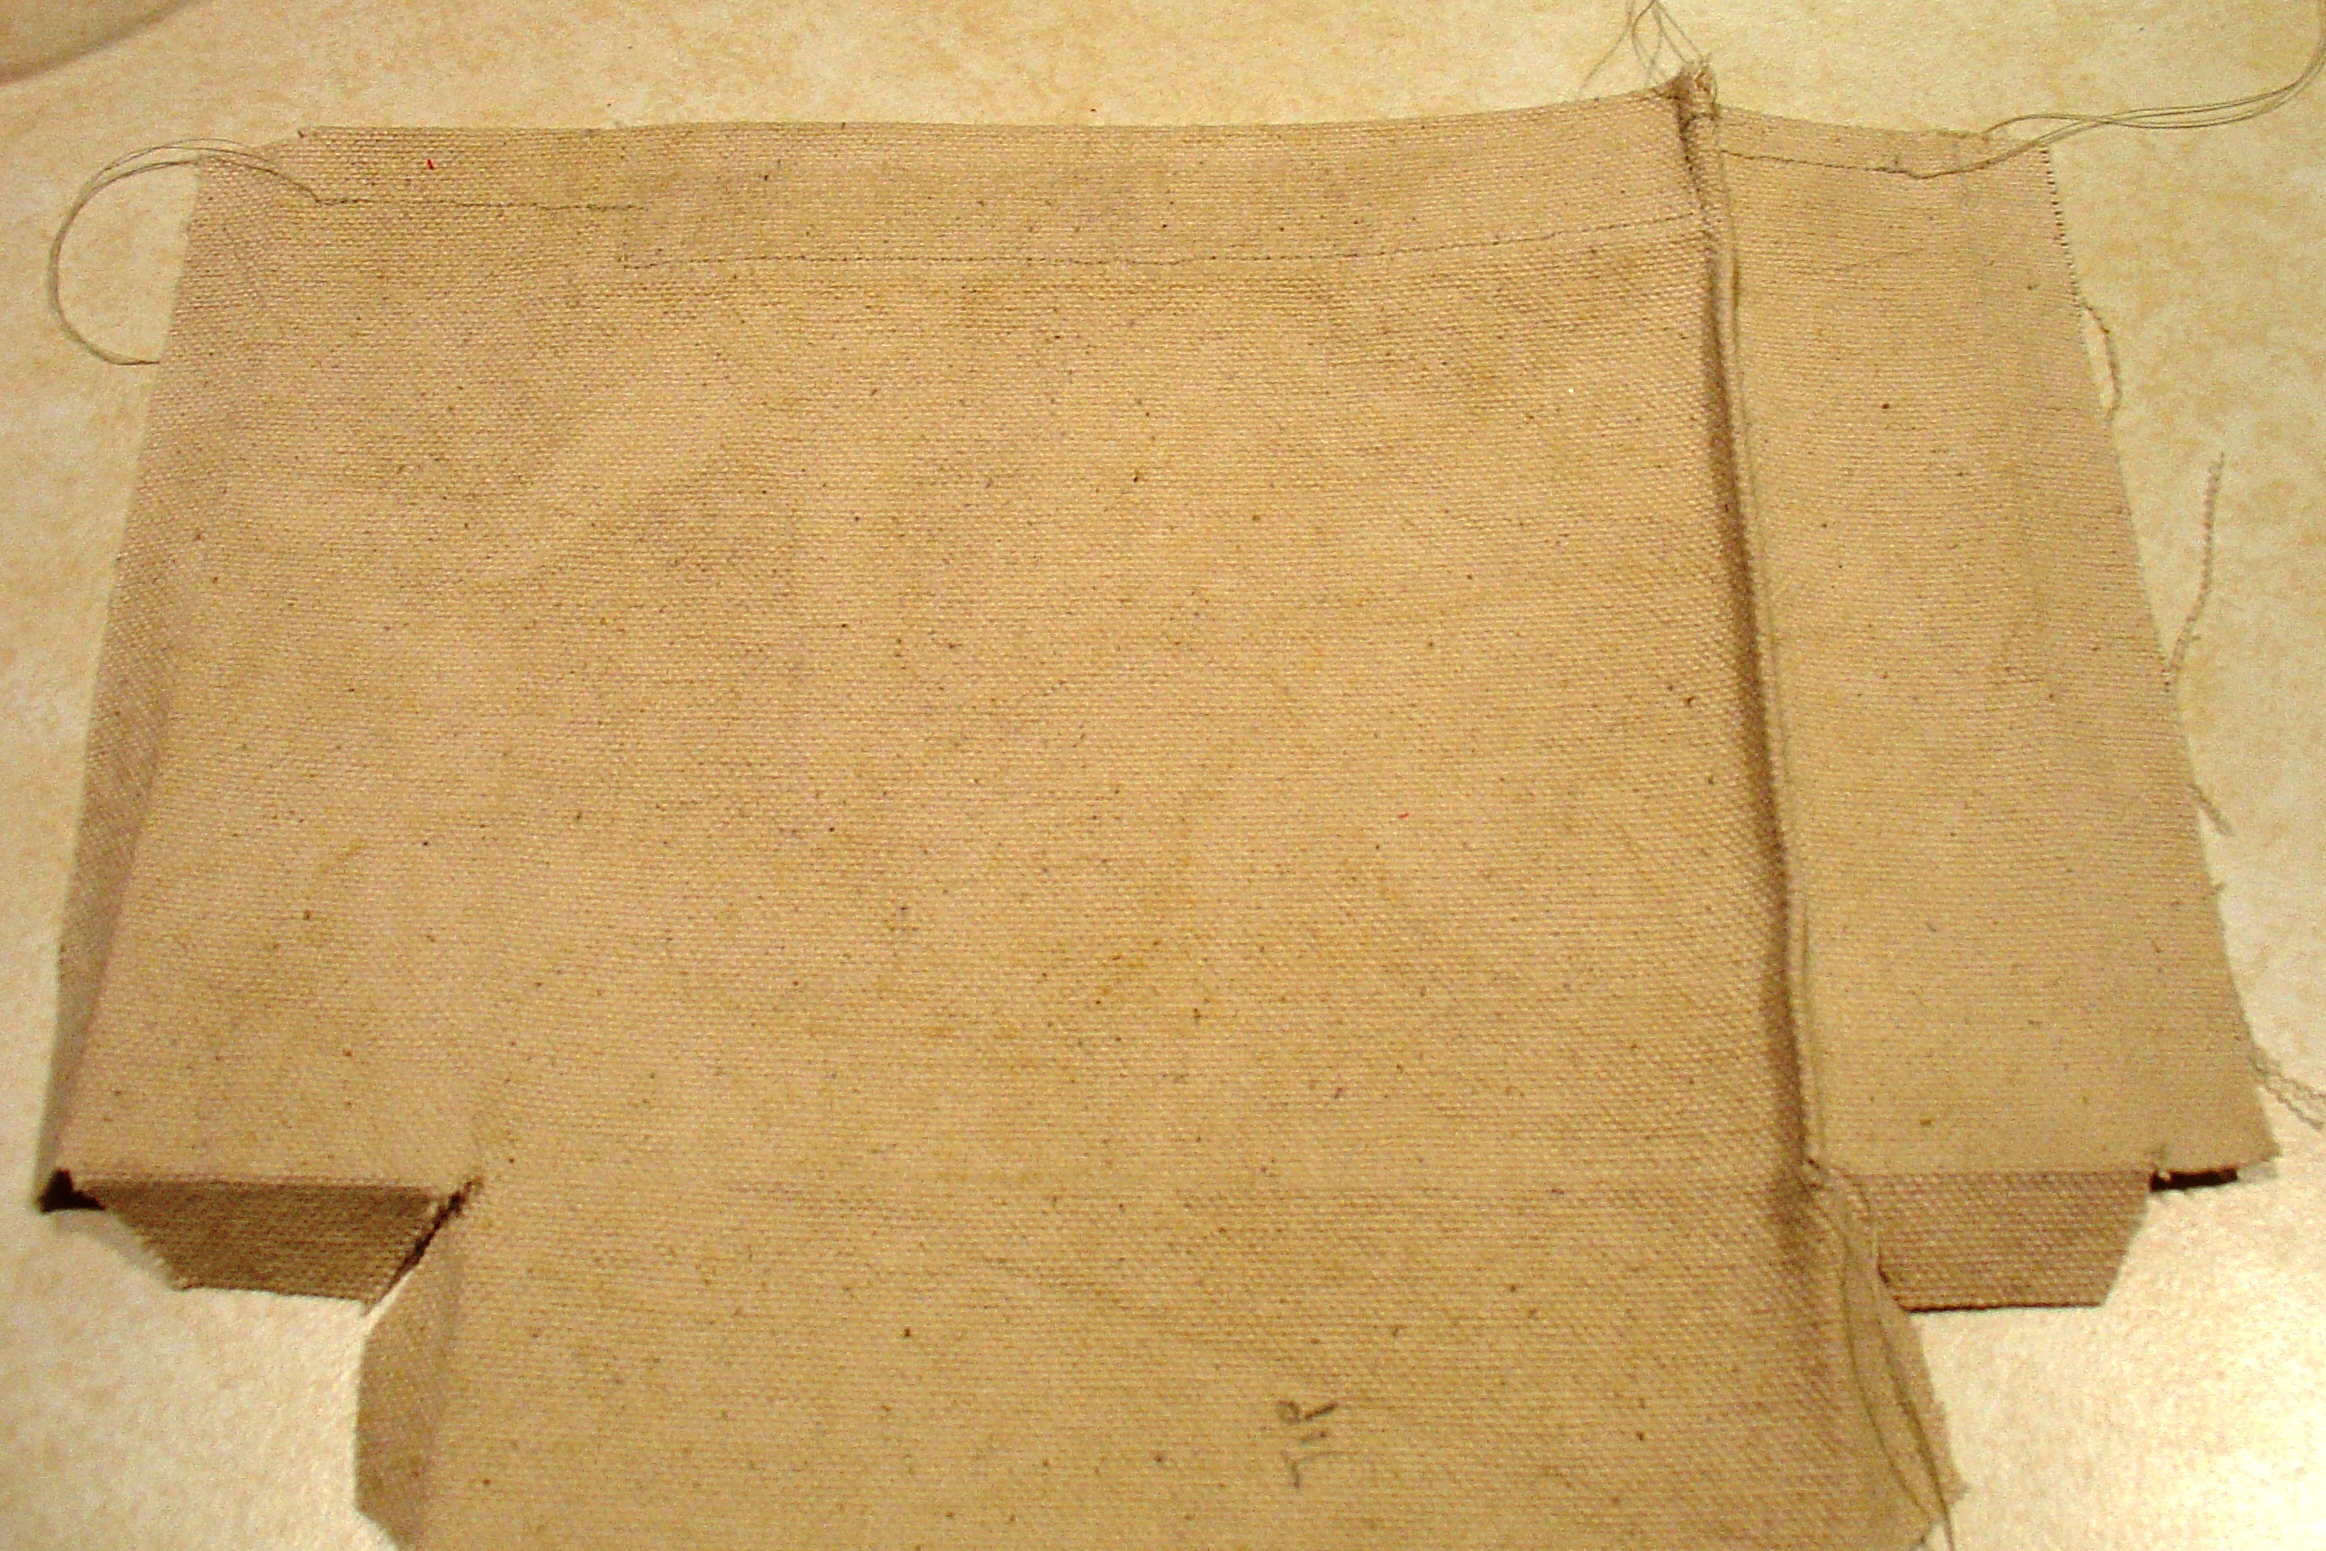 Picture of Assembly - Main Body of Bag 1